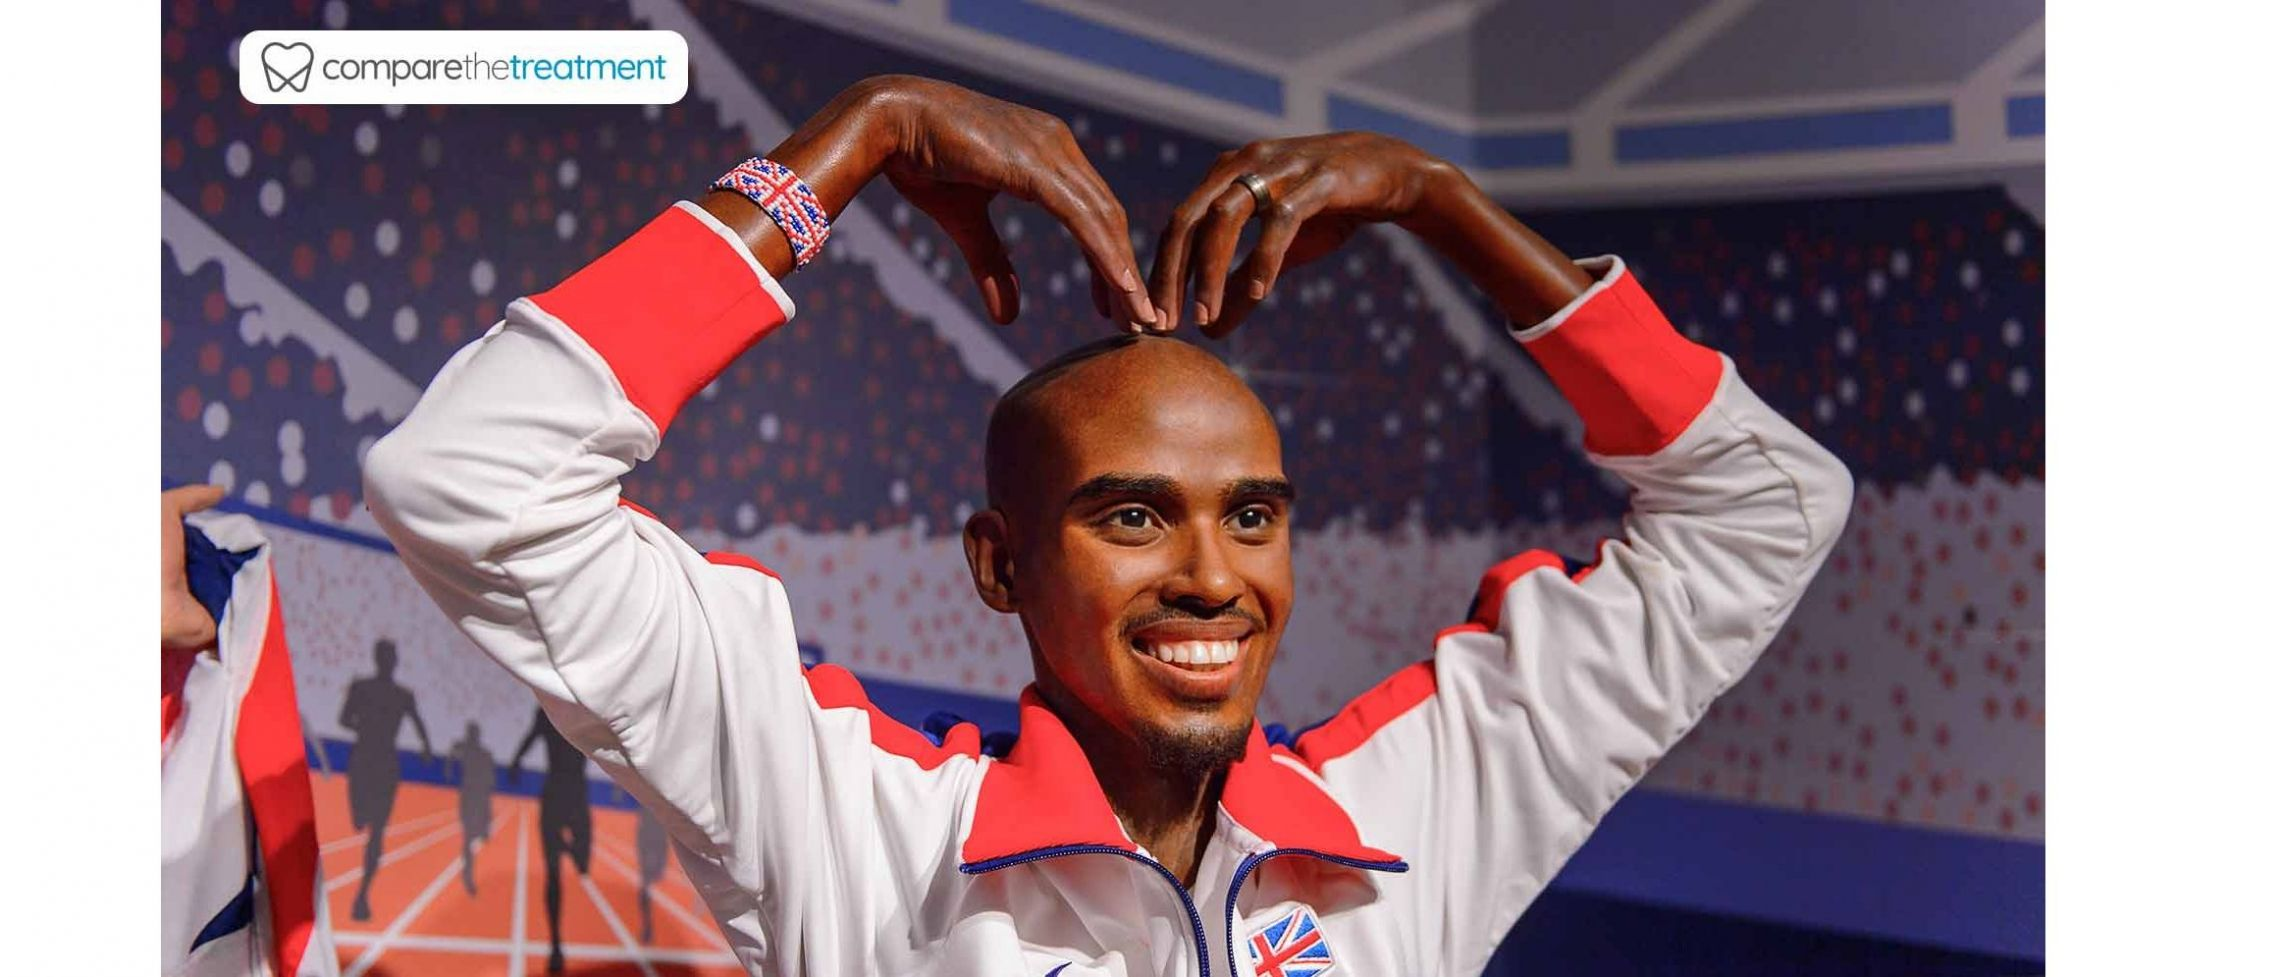 Mo Farah 'really suffered' after not looking after teeth